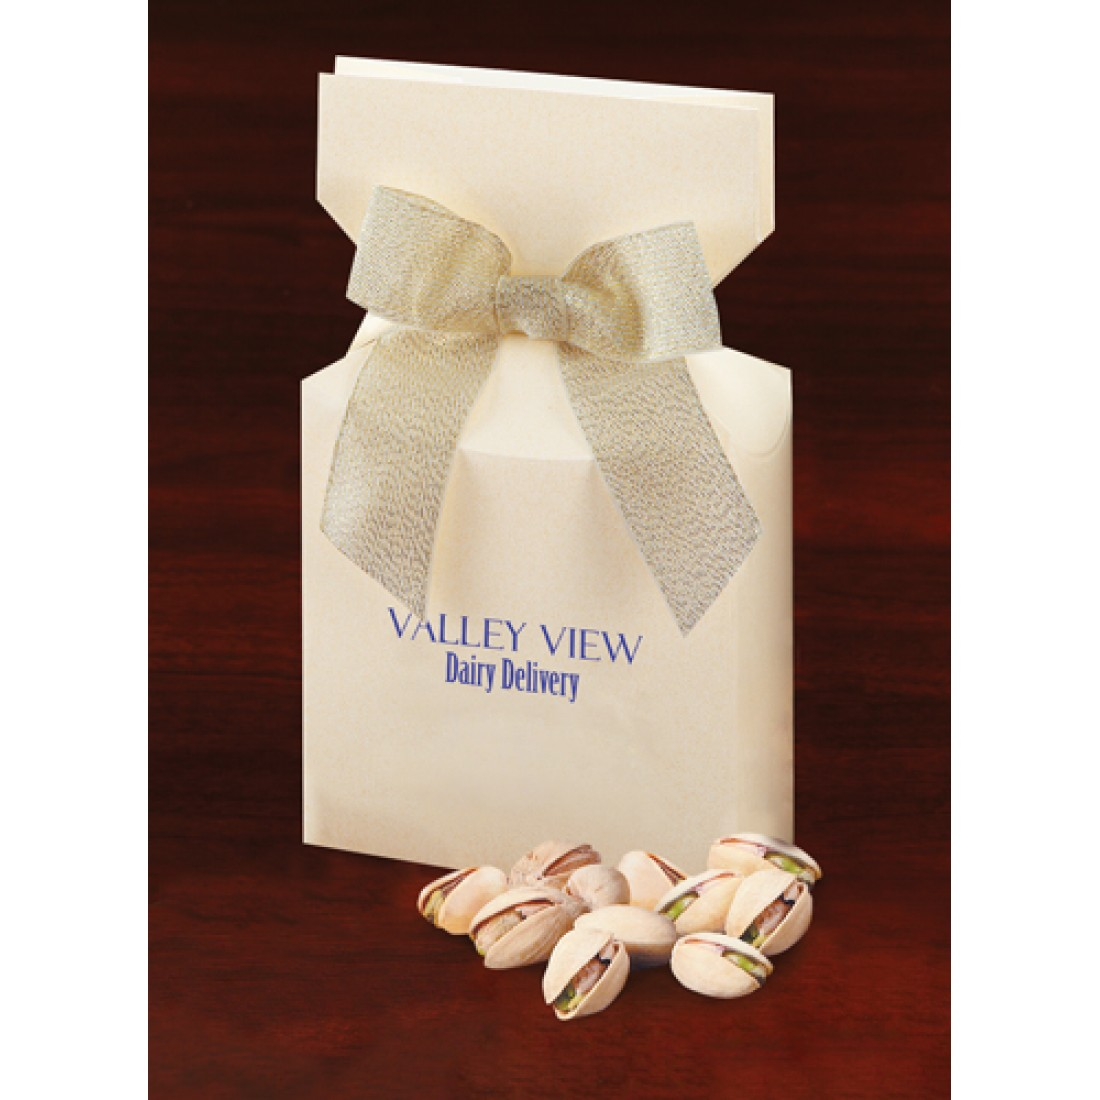 Ivory Preprinted Boxes with California Pistachios